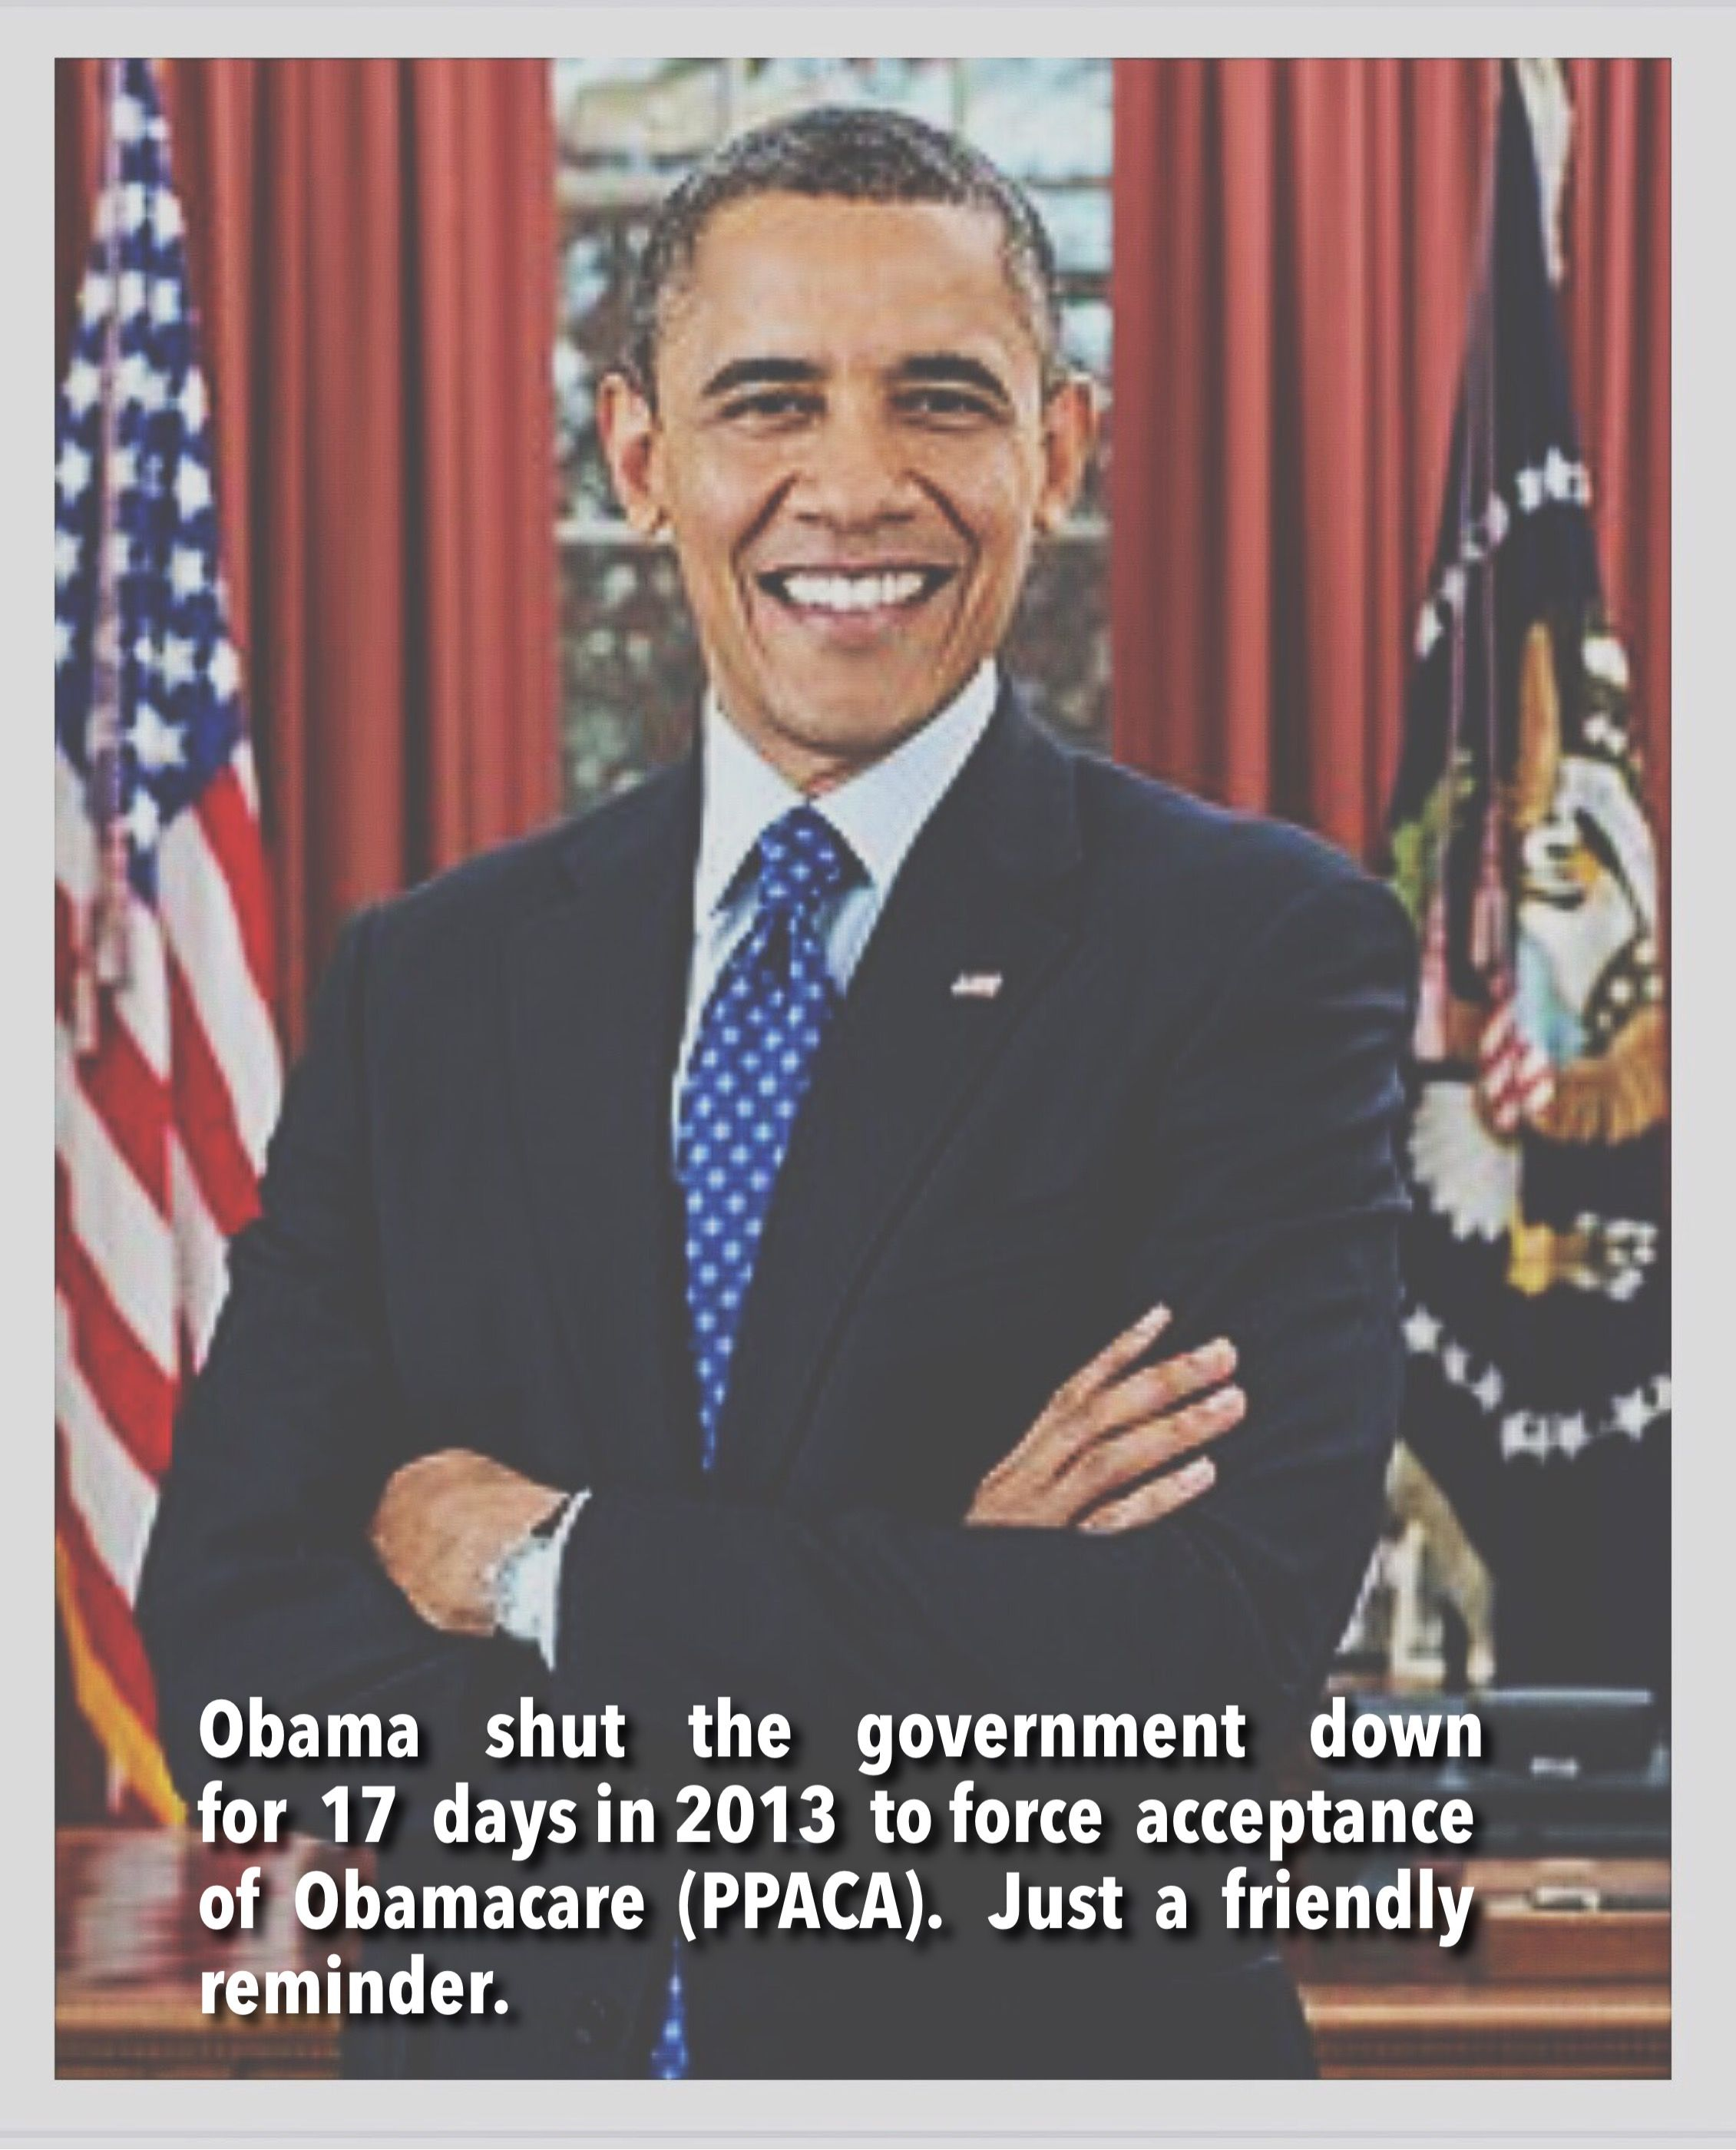 Why did obama shut the government down